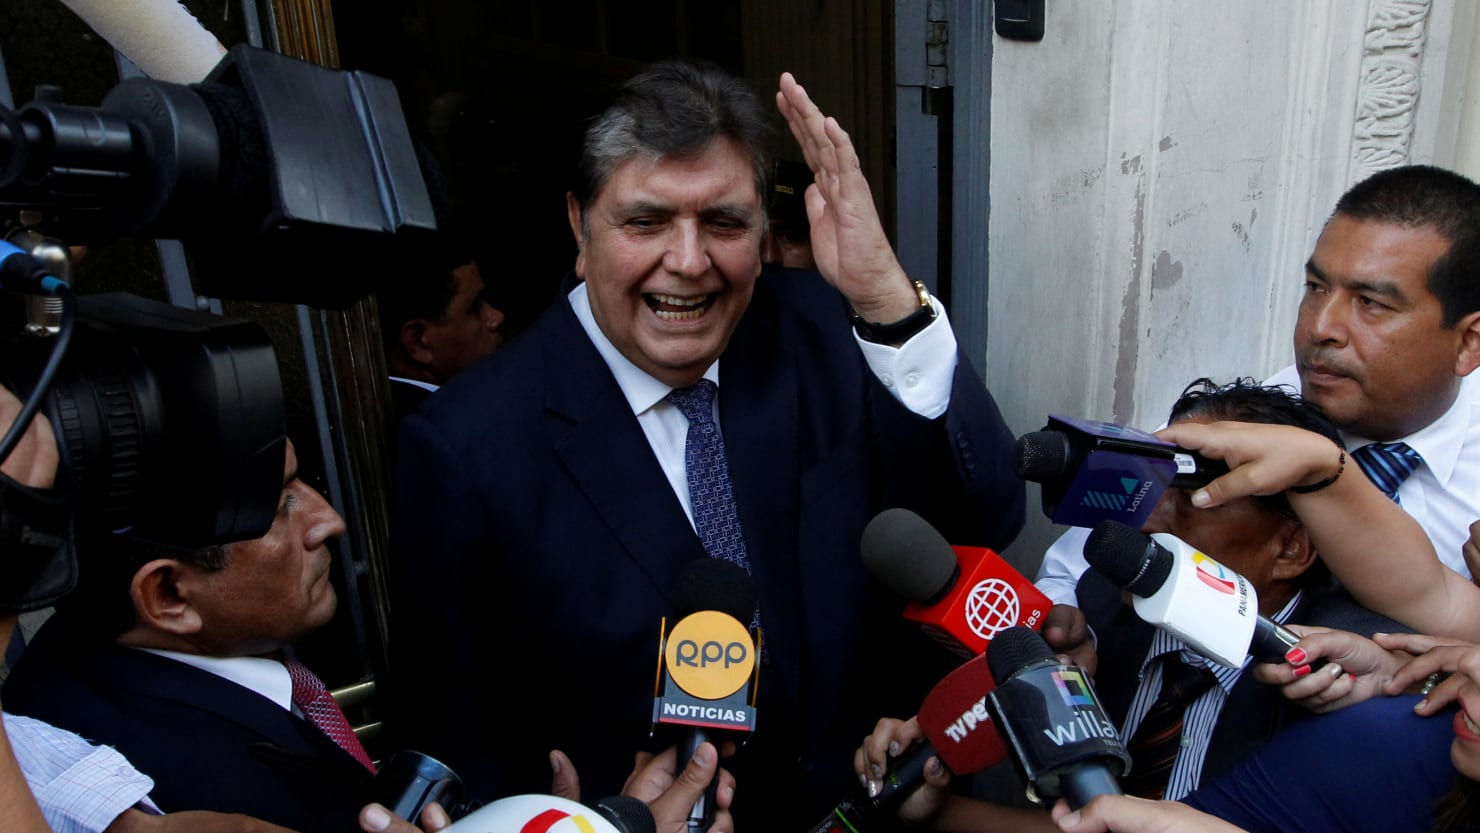 Peru's Ex-President 'Shoots Himself in Neck' While Being Arrested on Corruption Allegations